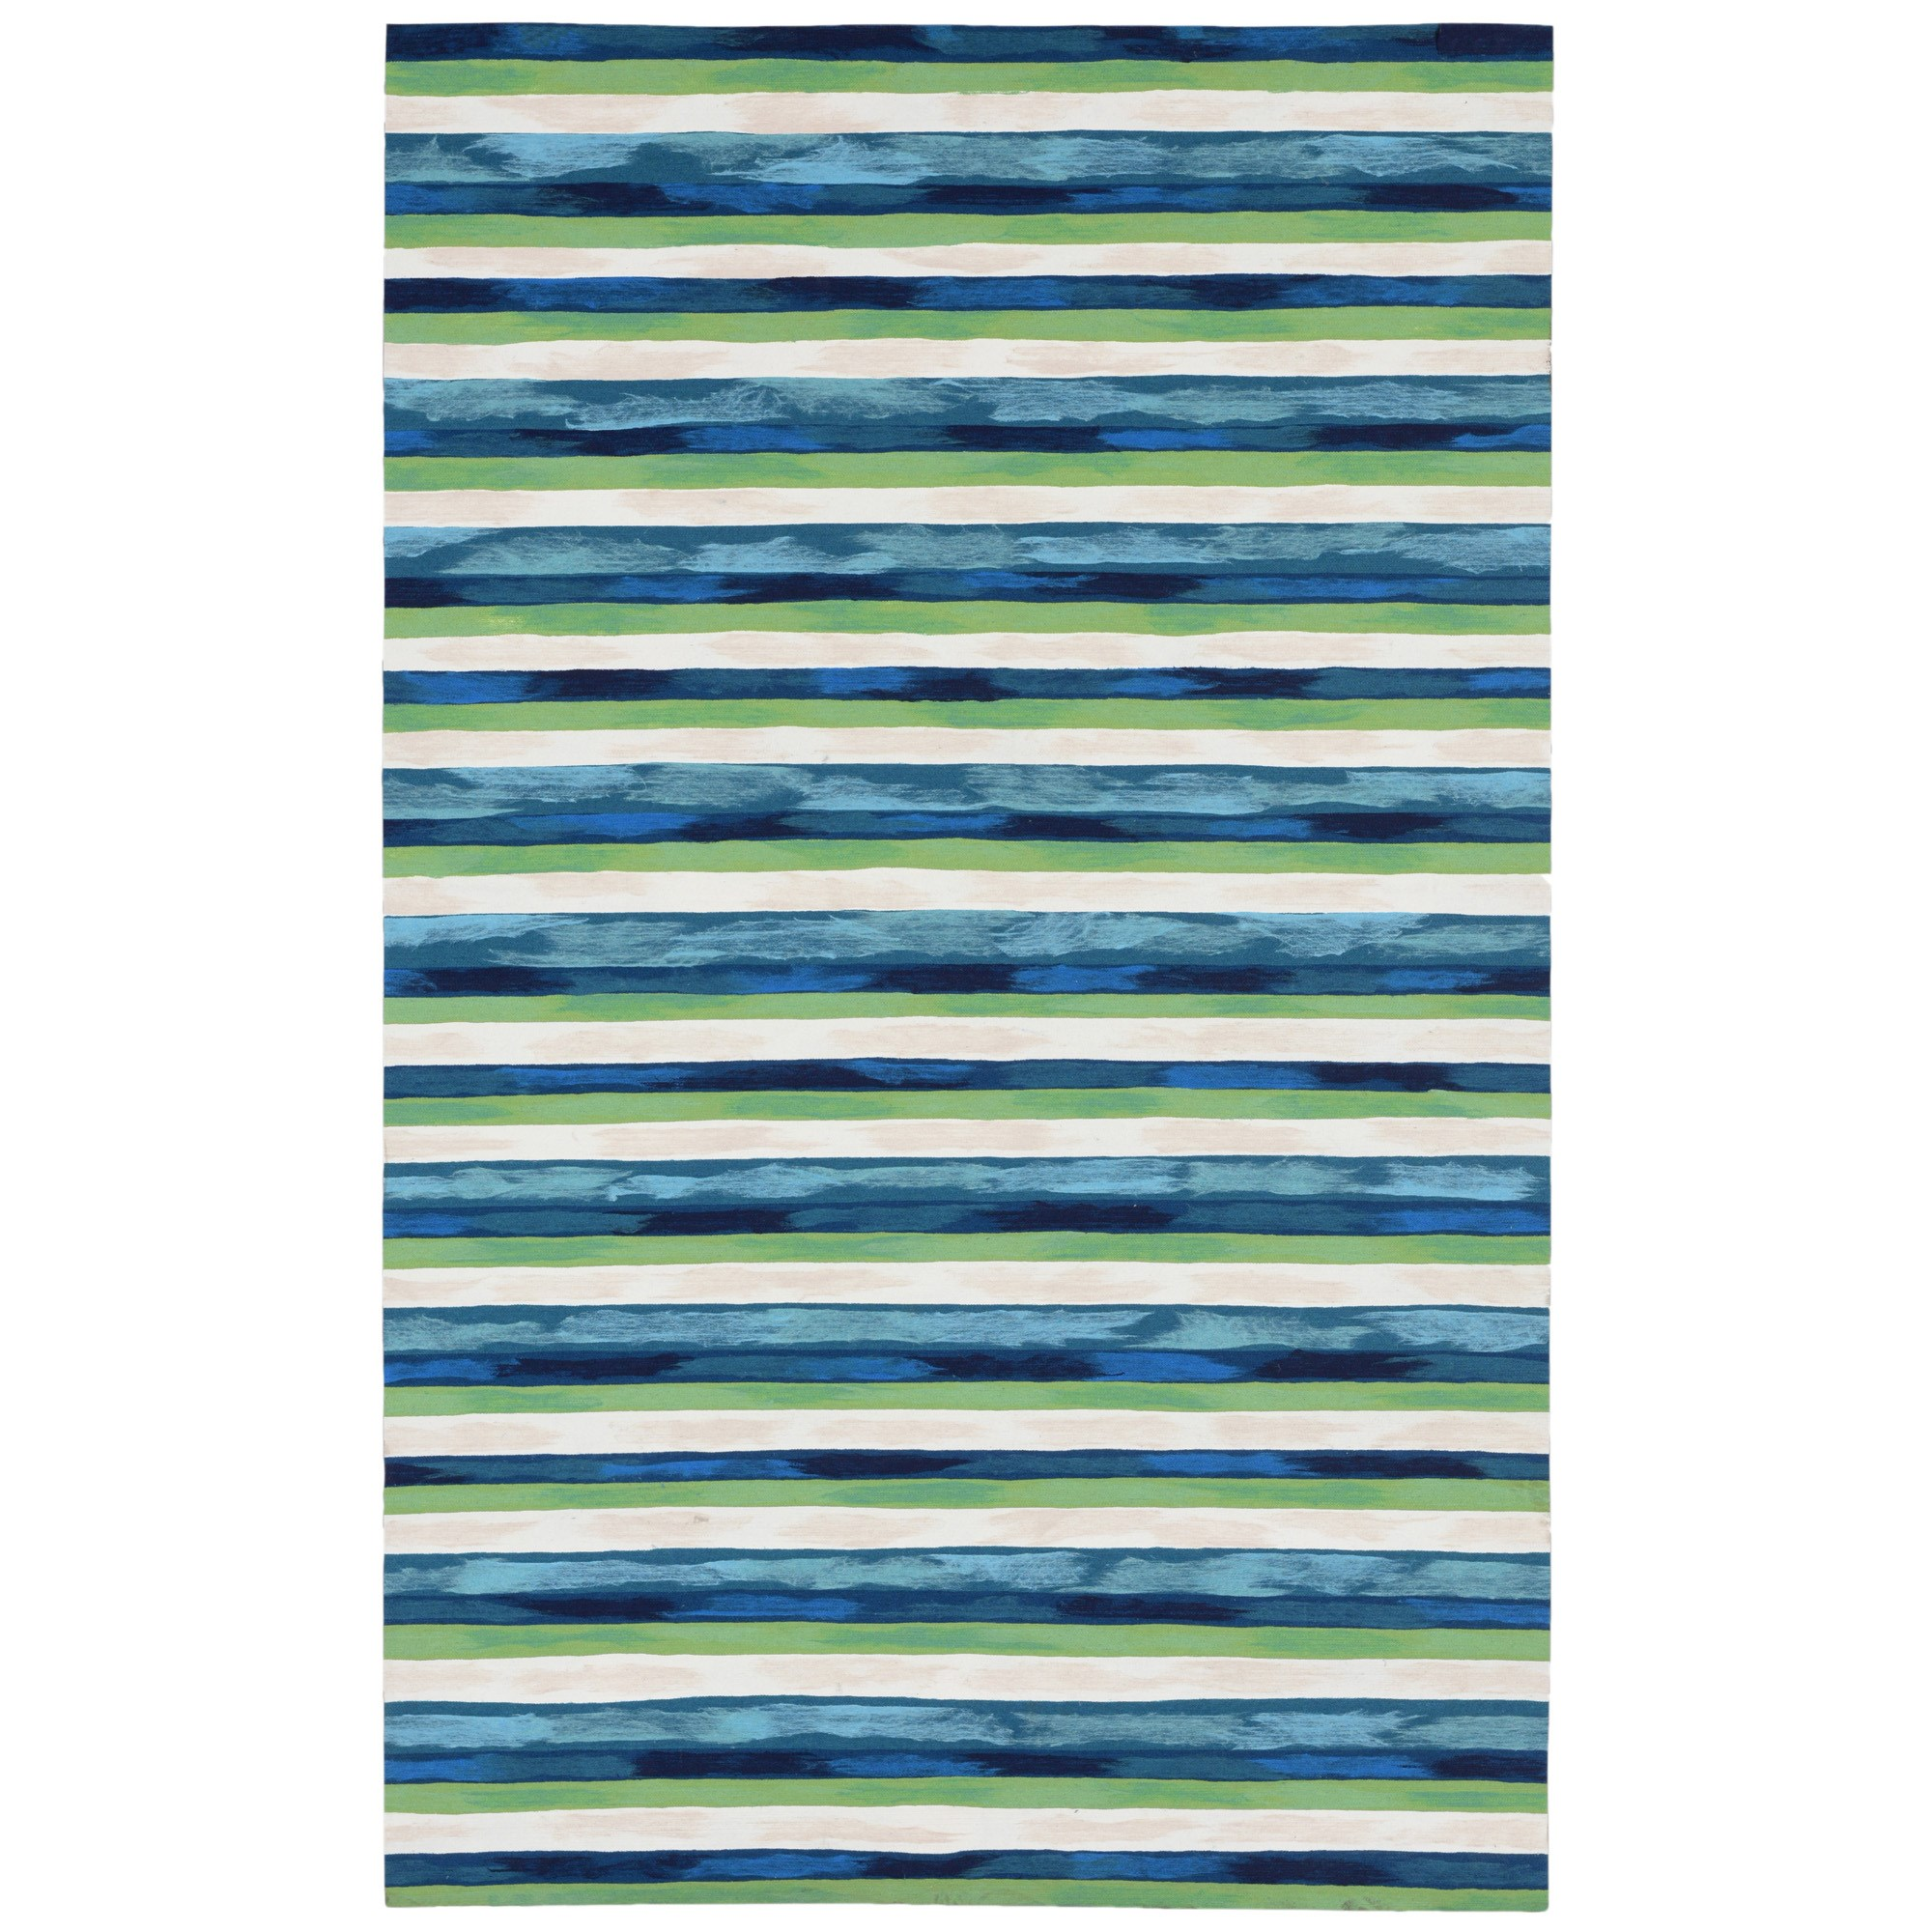 Liora Manne Visions Ii Painted Stripes Indoor Outdoor Rug Cool Visions Trans Ocean